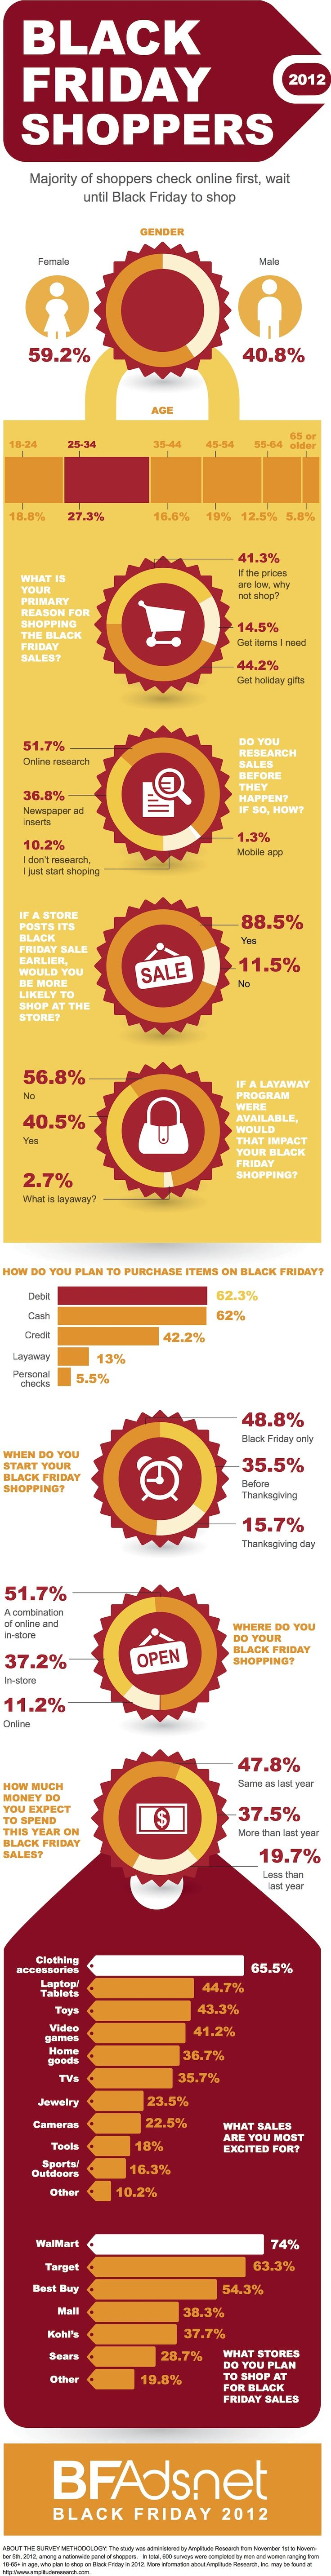 "Black Friday Shoppers 2012 #Infographic... The primary reason for shopping the Black Friday Sales are... 41.3% say ""If the prices are low, why not shop?"""